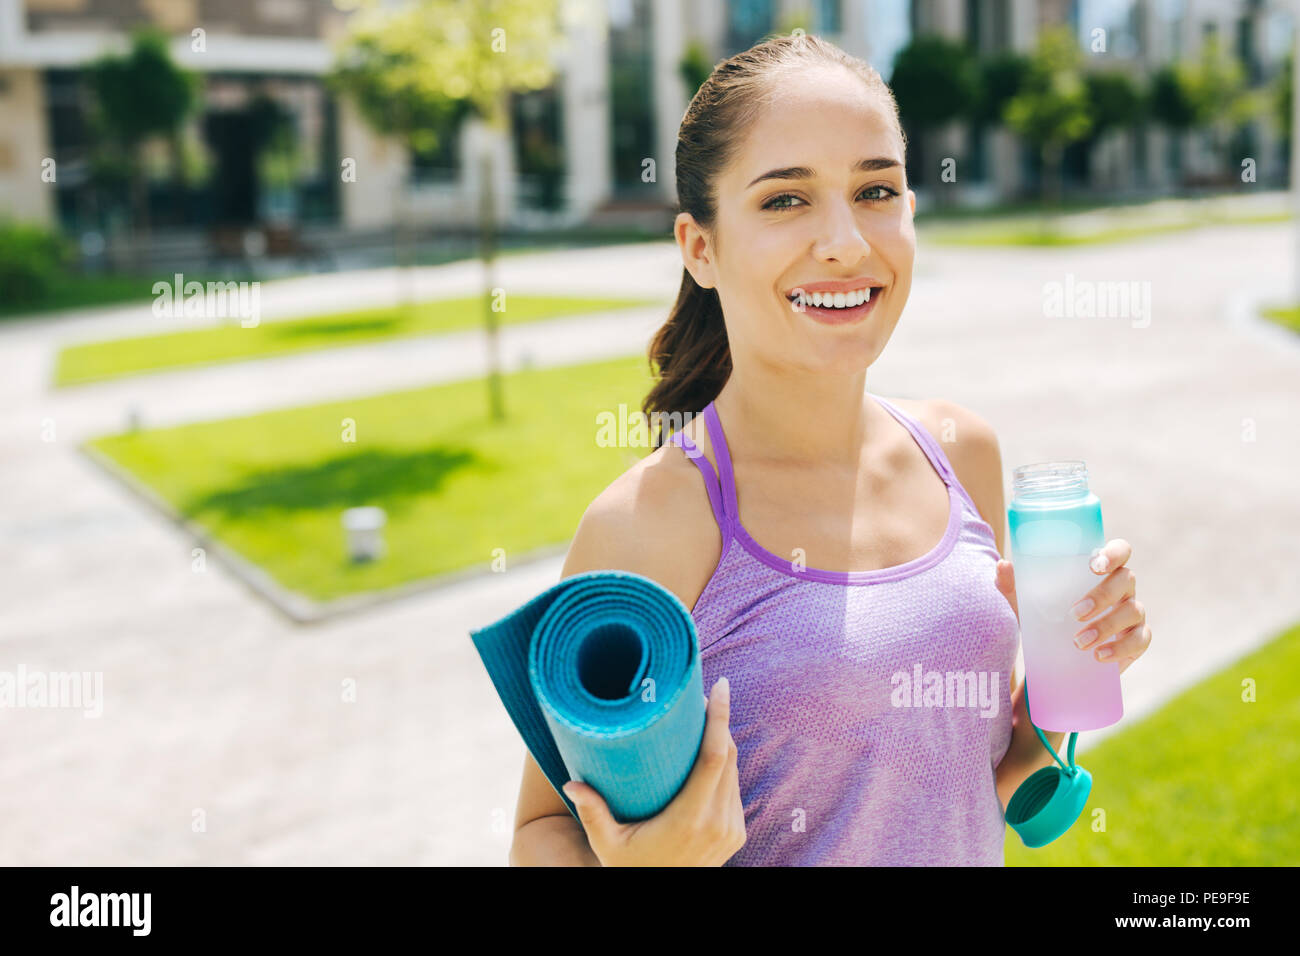 Delighted nice woman leading healthy lifestyle - Stock Image